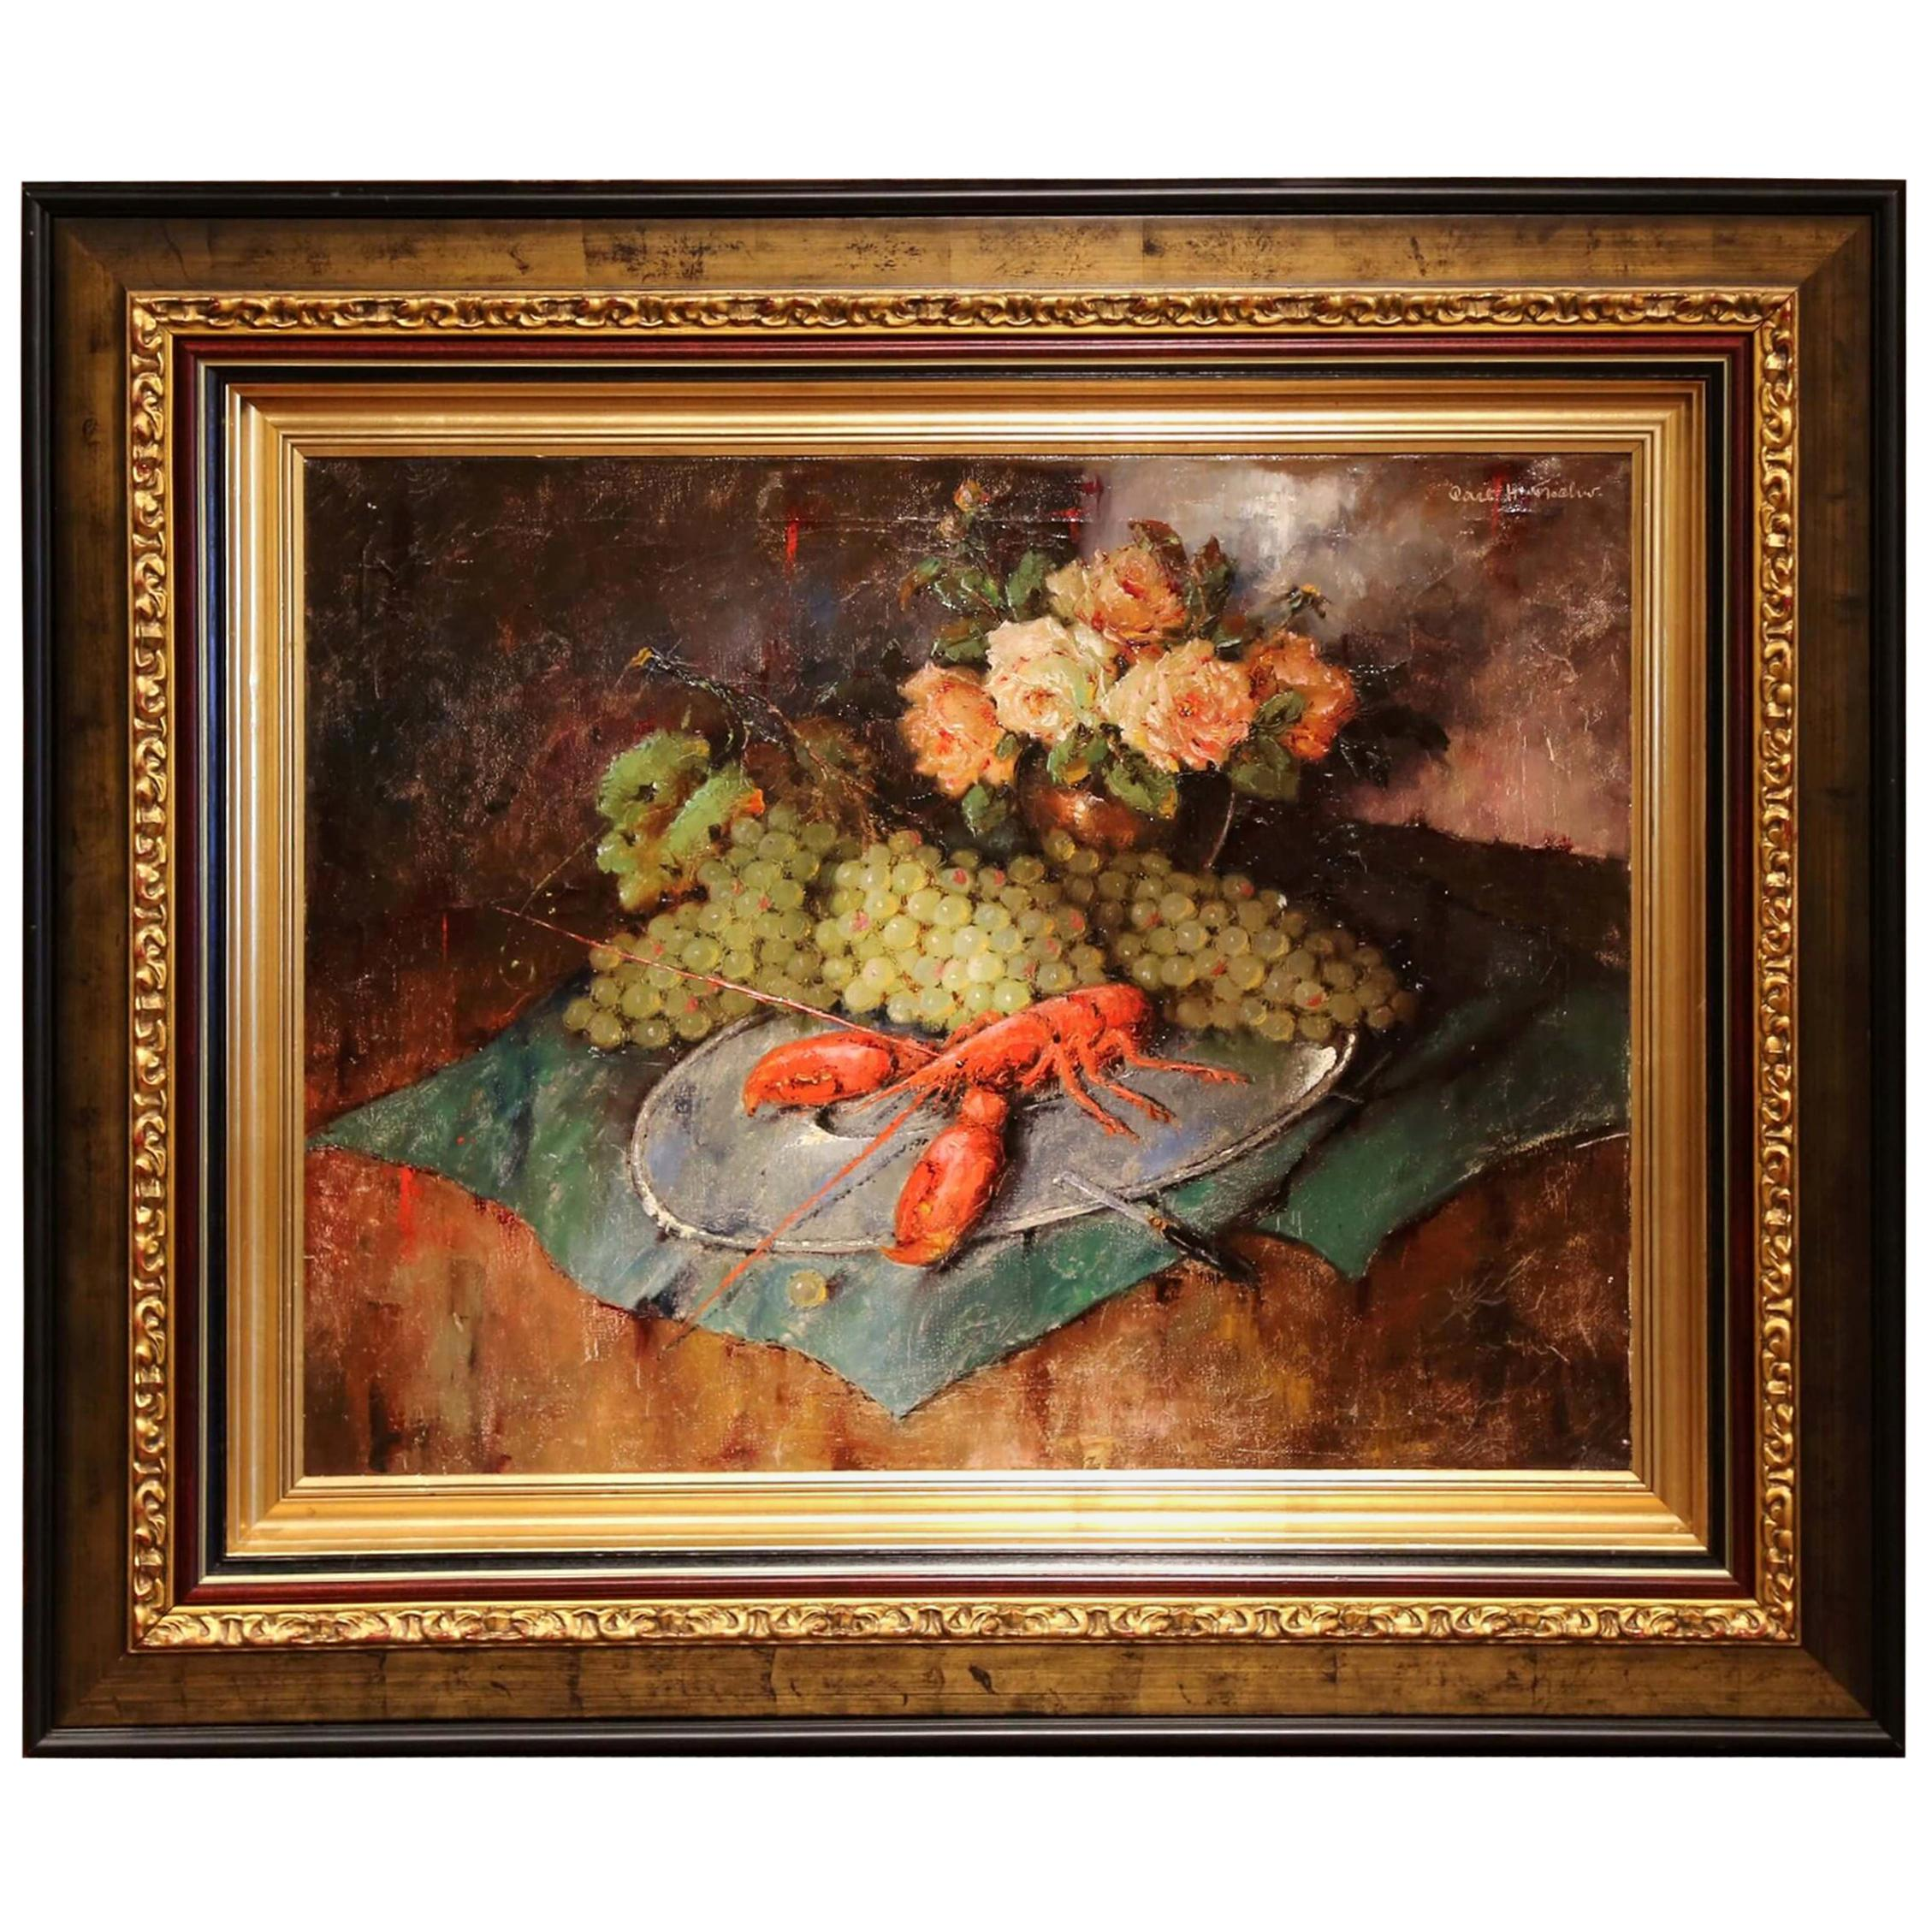 Early 20th Century Still Life Oil Painting in Gilt Frame Signed C. Fischer